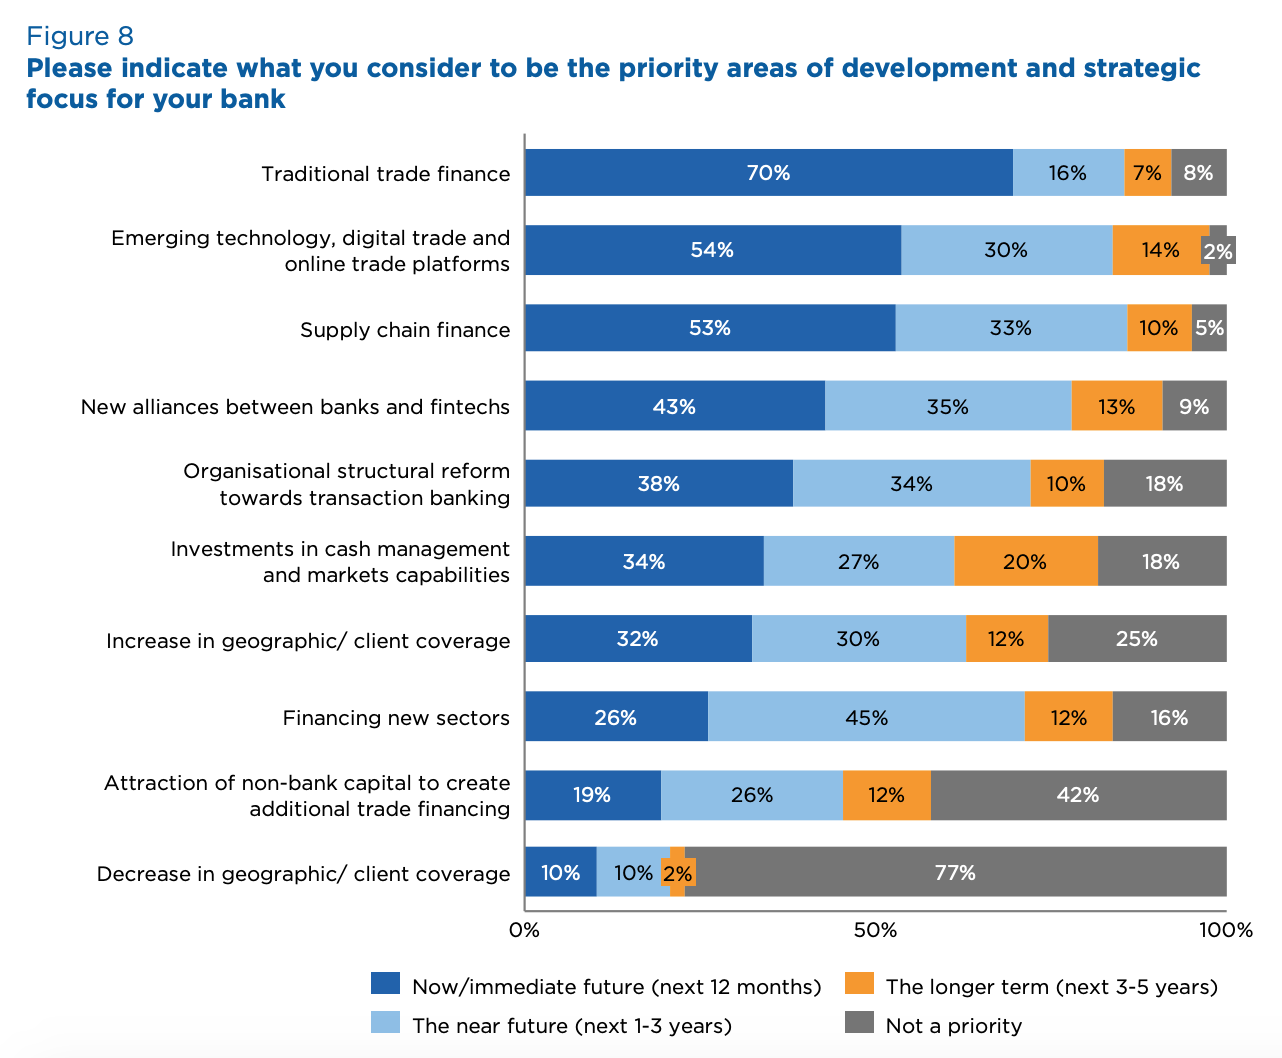 Priority areas of development and strategic focus for banks, Source- 2020 Global Survey on Trade Finance, International Chamber of Commerce, July 2020